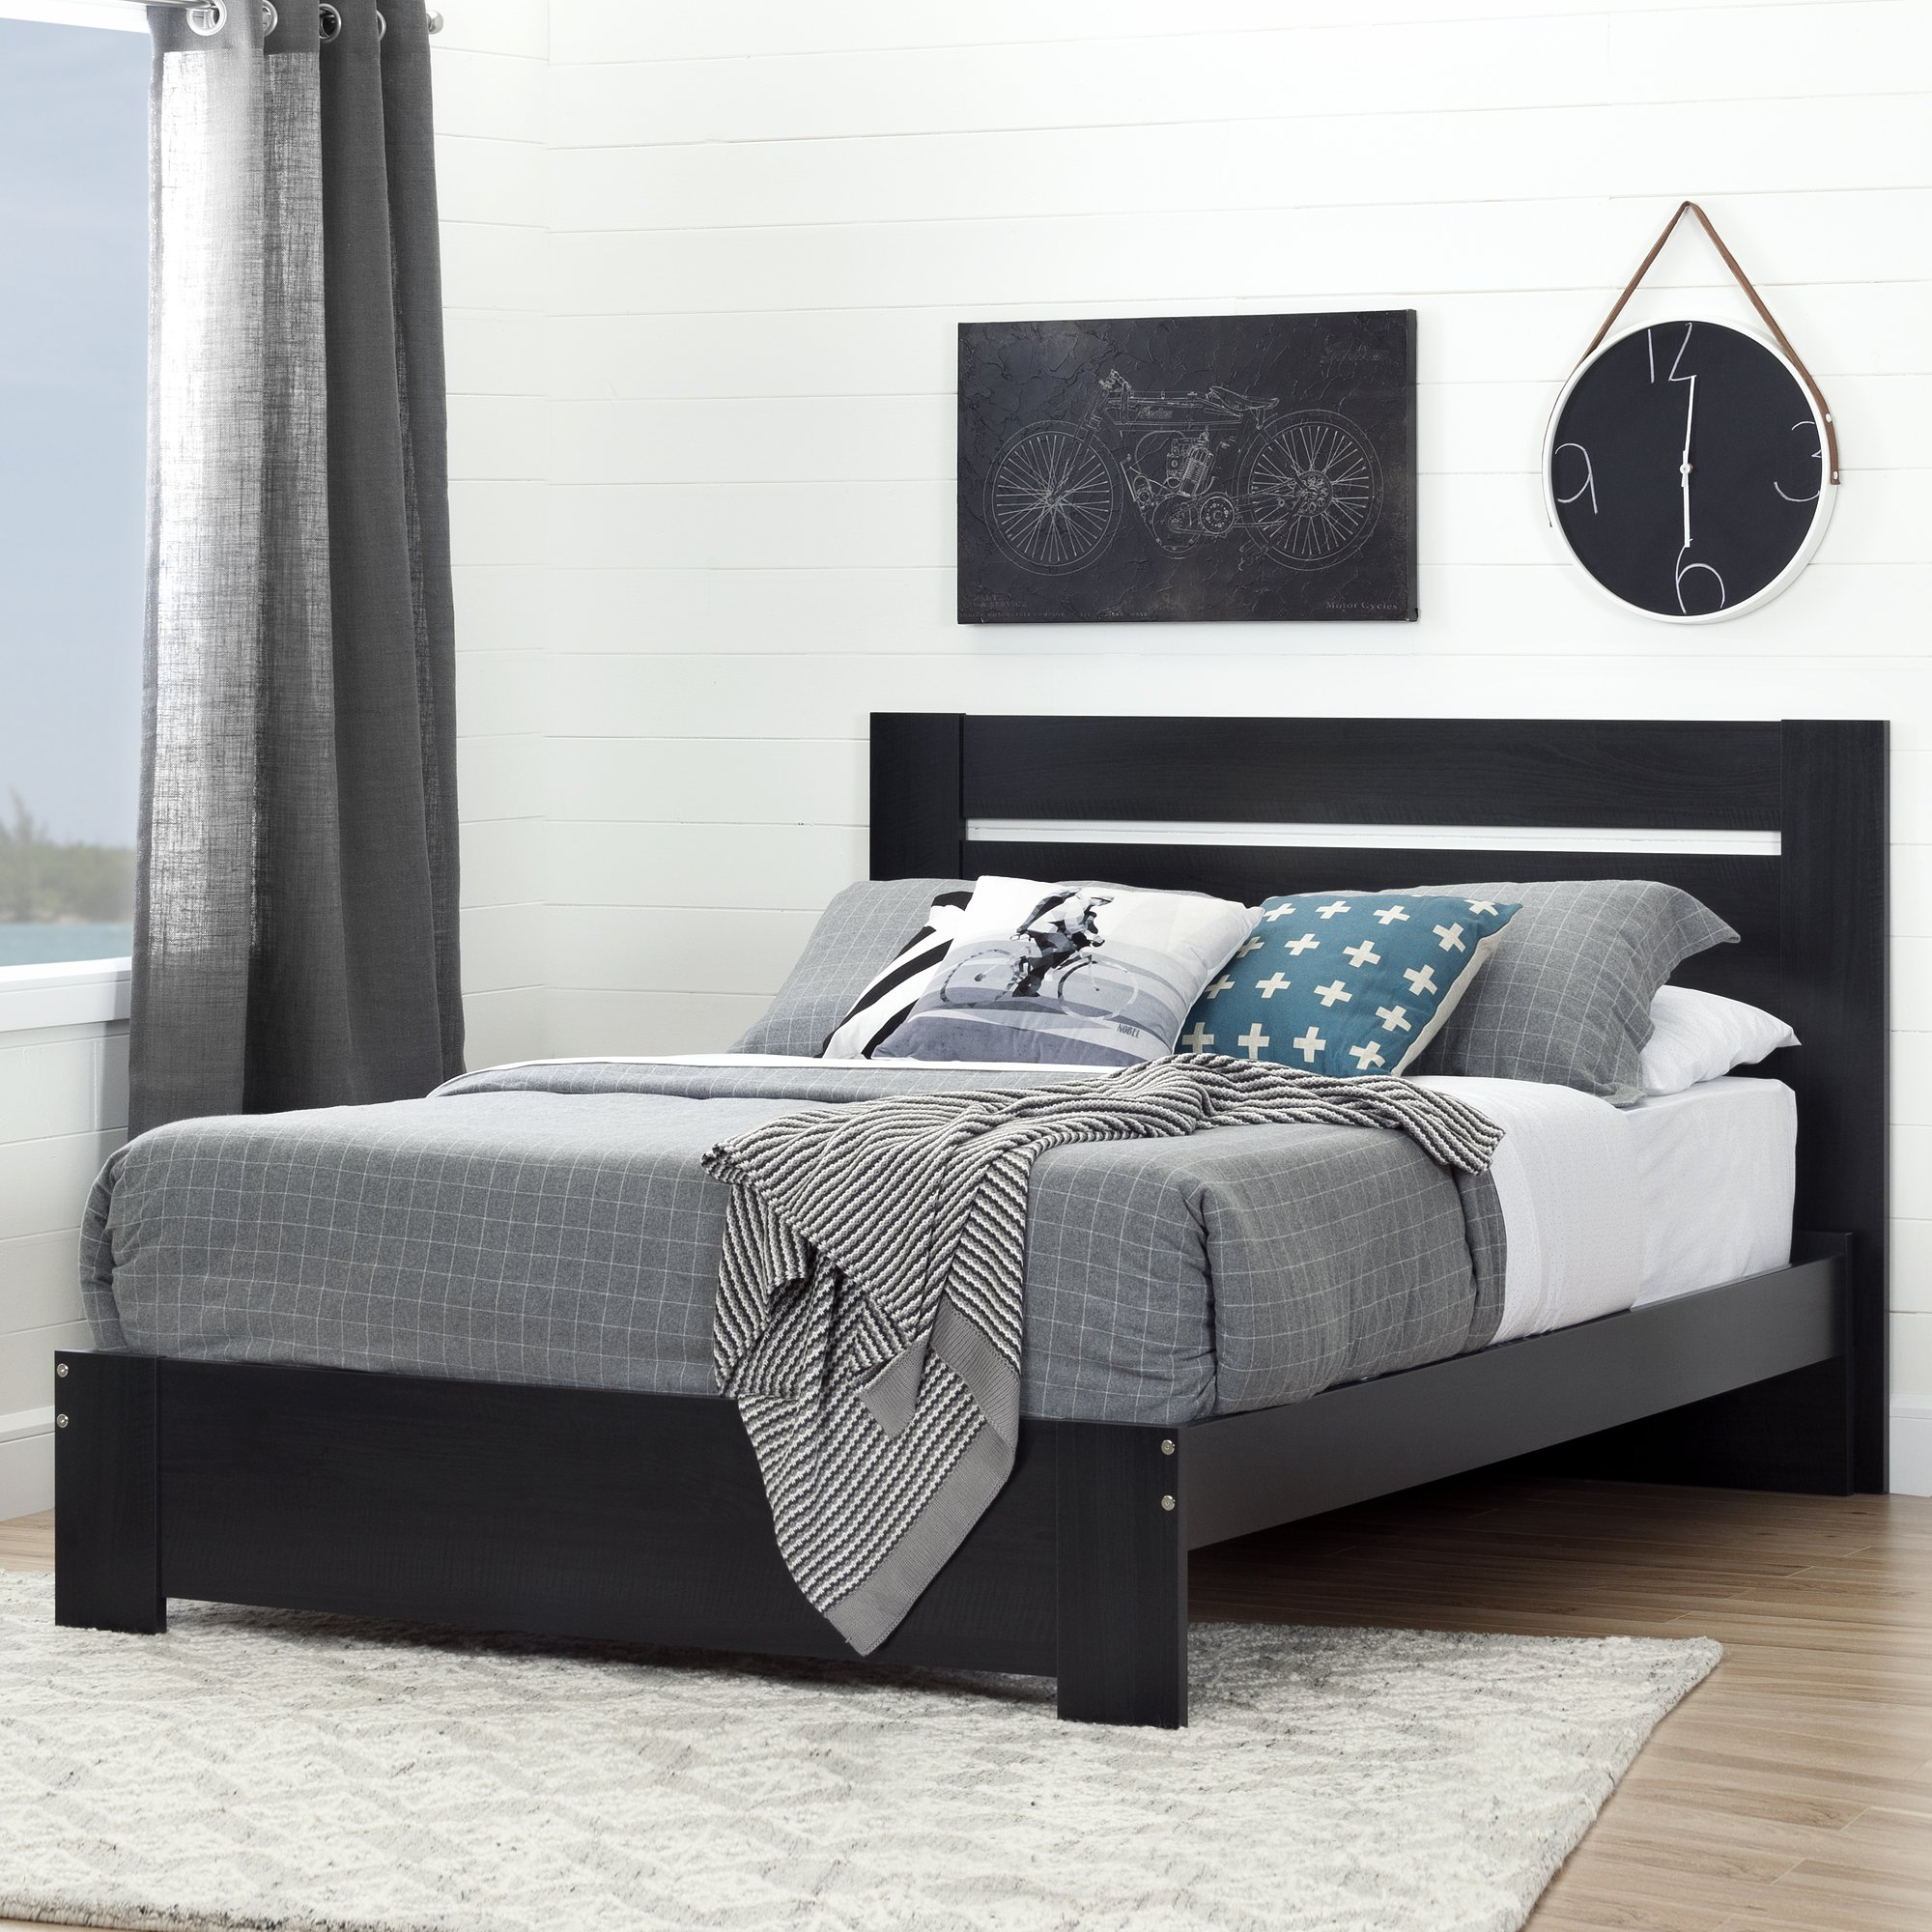 South Shore Reevo Full/Queen Headboard (54/60''), Black Onyx by South Shore (Image #4)